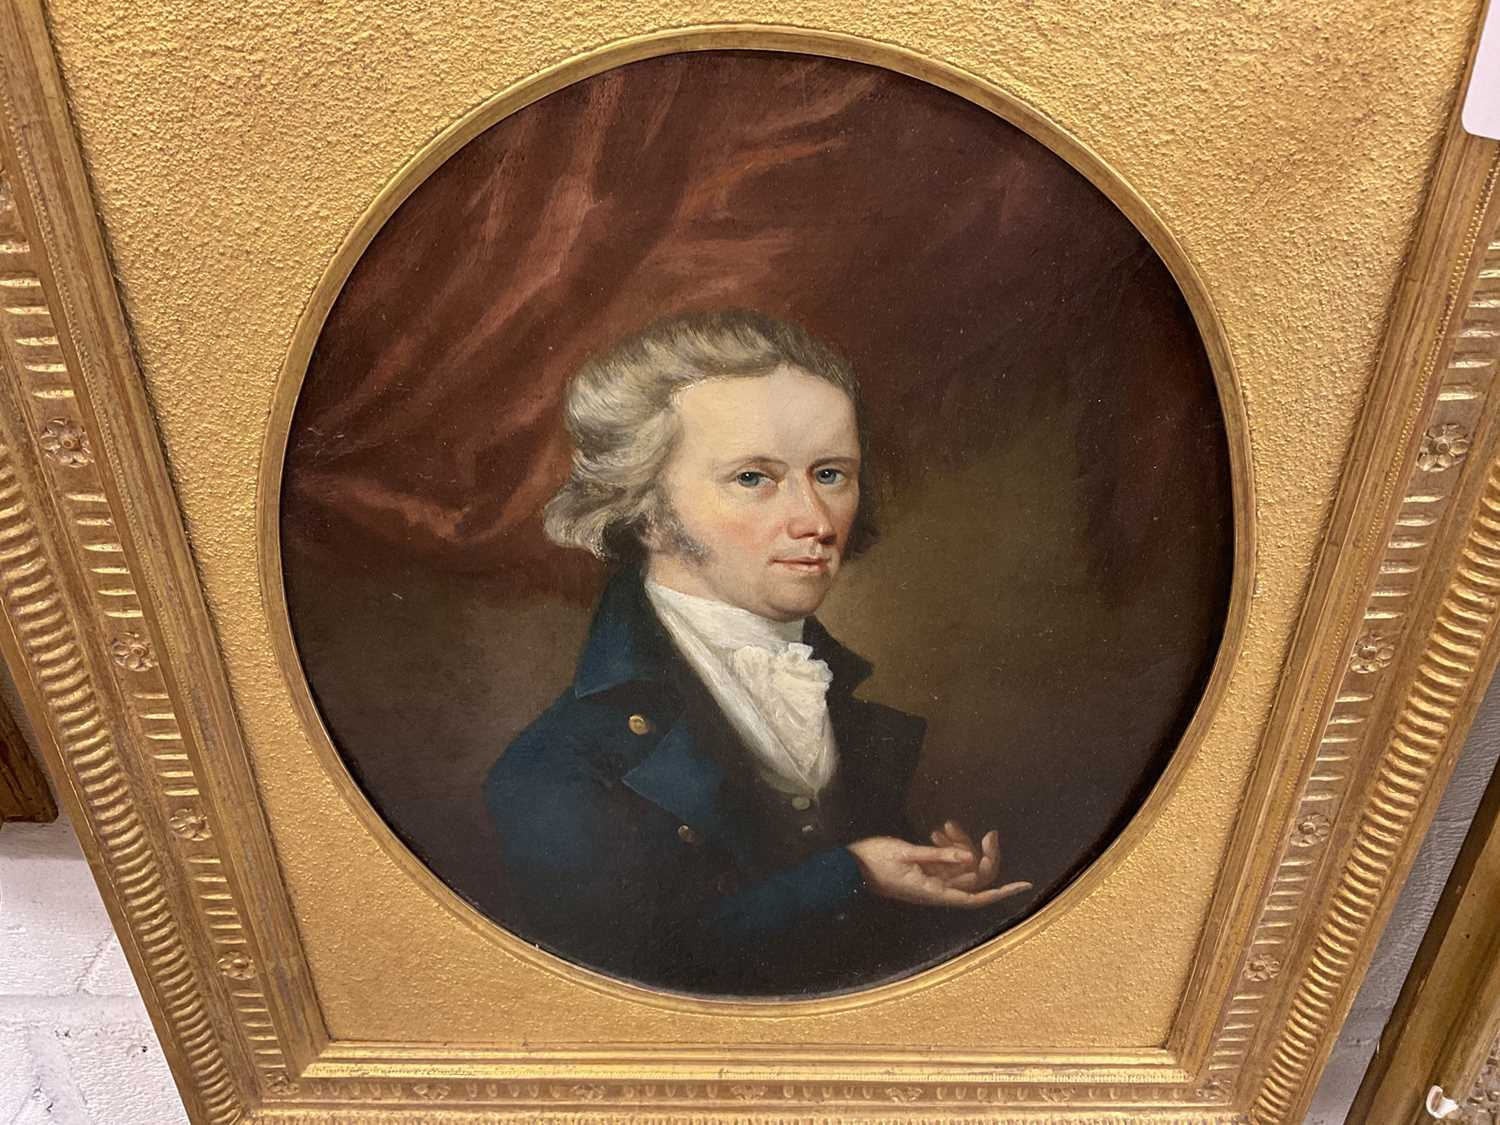 John Greham, late 18th century, oval oil on canvas - portrait of a gentleman, in gilt frame - Image 11 of 11